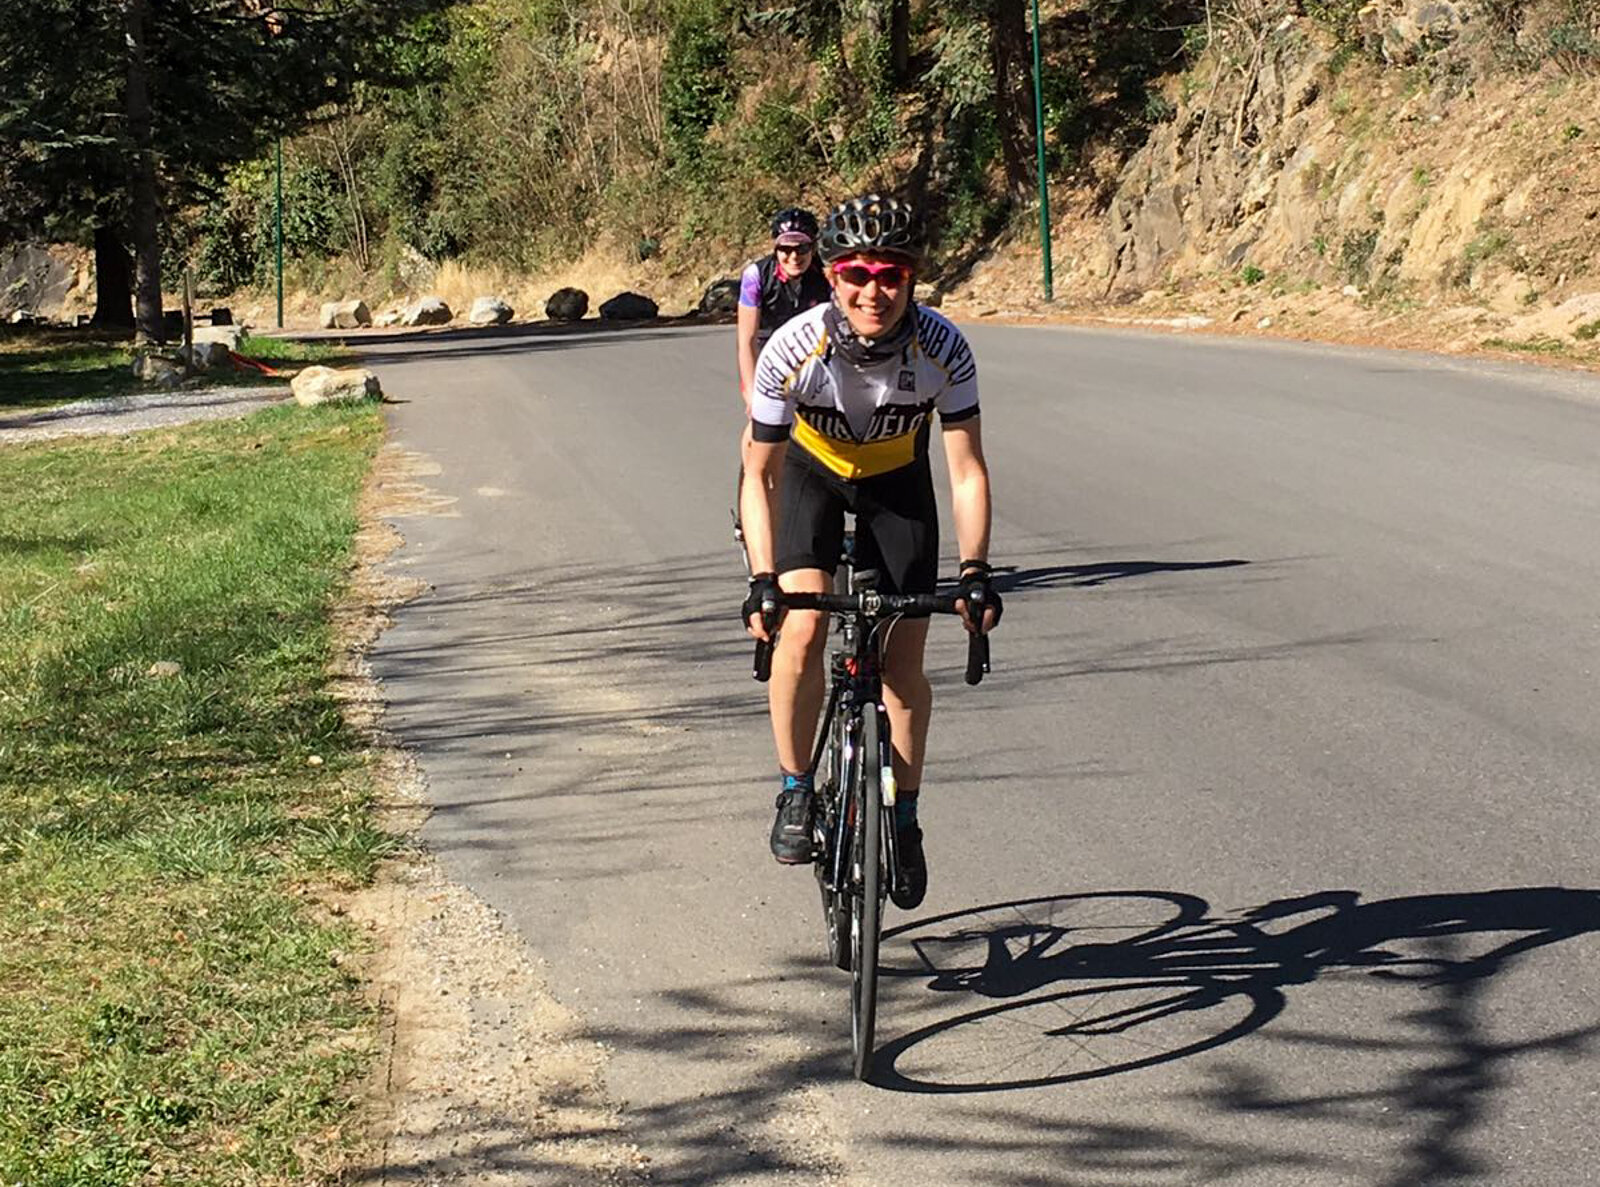 Karen Tostee on a training camp with us here in Casteil, French Pyrenees